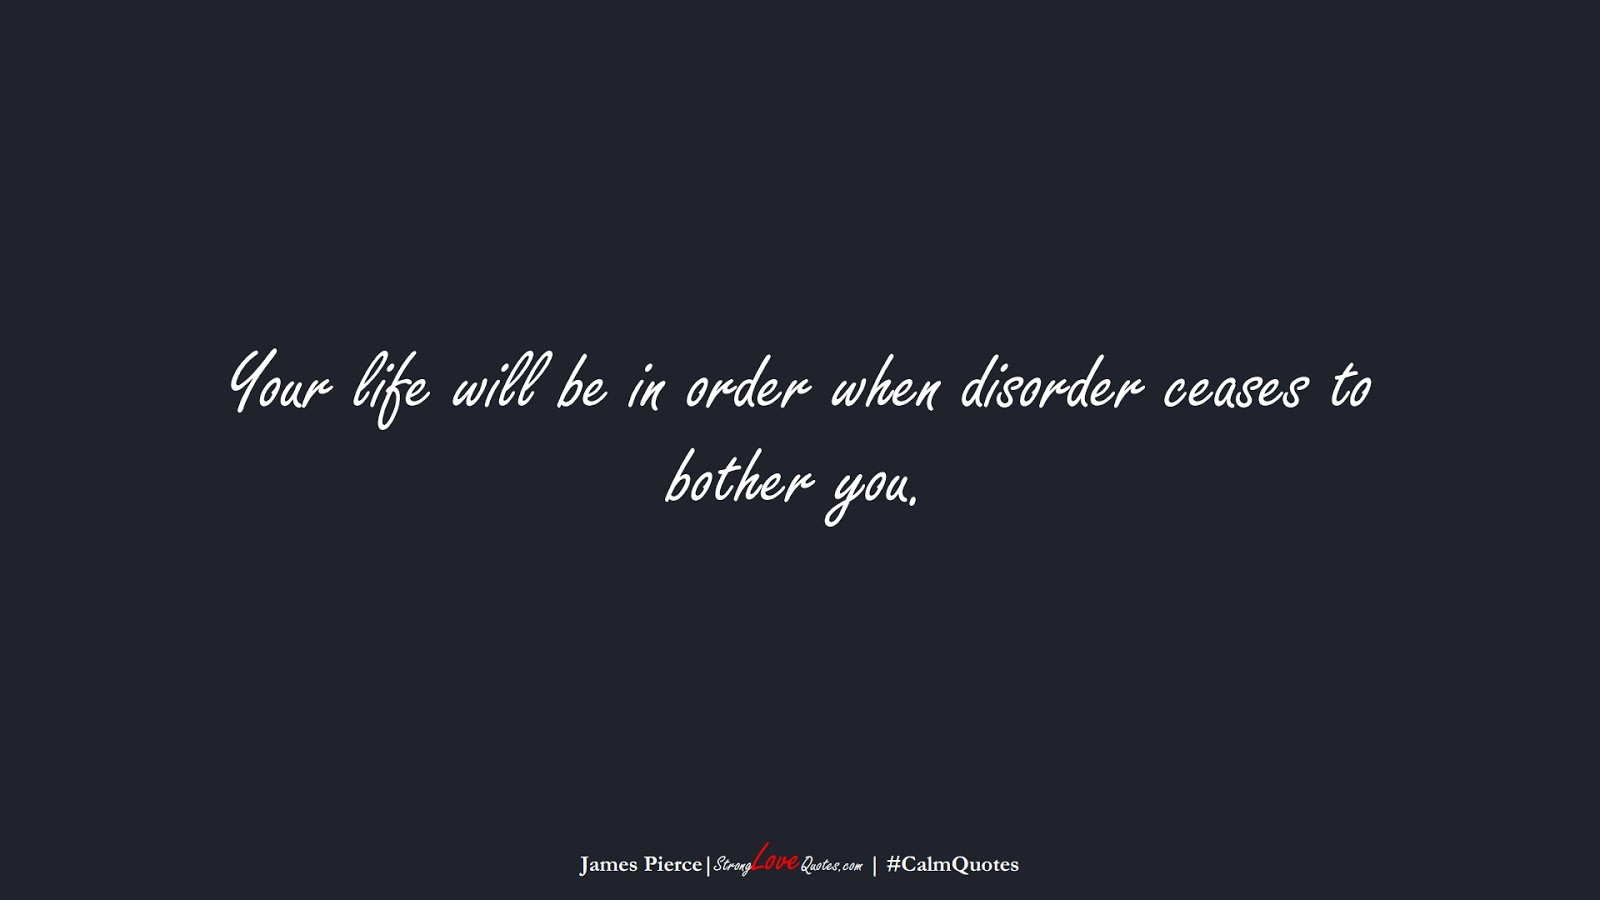 Your life will be in order when disorder ceases to bother you. (James Pierce);  #CalmQuotes